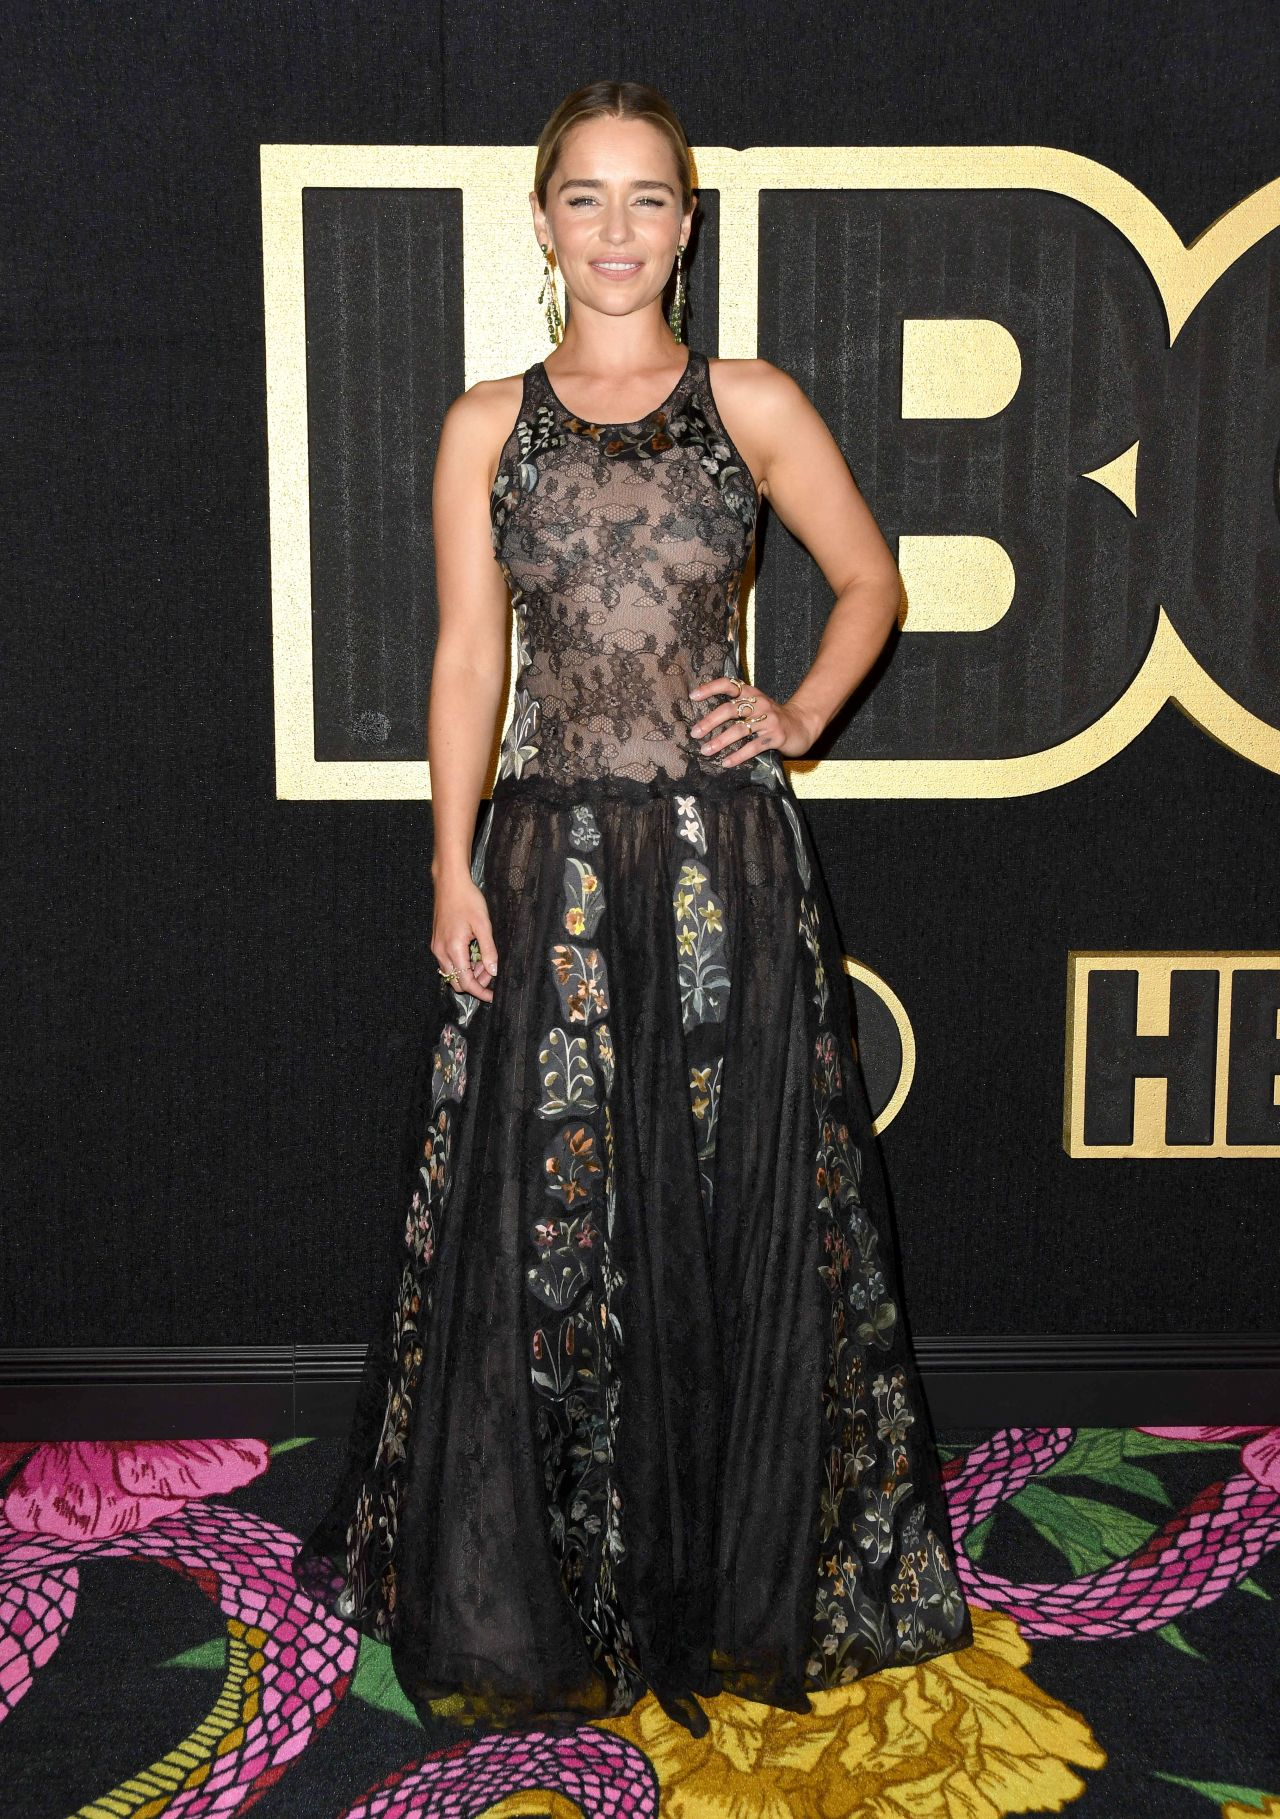 https://celebmafia.com/wp-content/uploads/2018/09/emilia-clarke-2018-emmy-awards-hbo-party-4.jpg